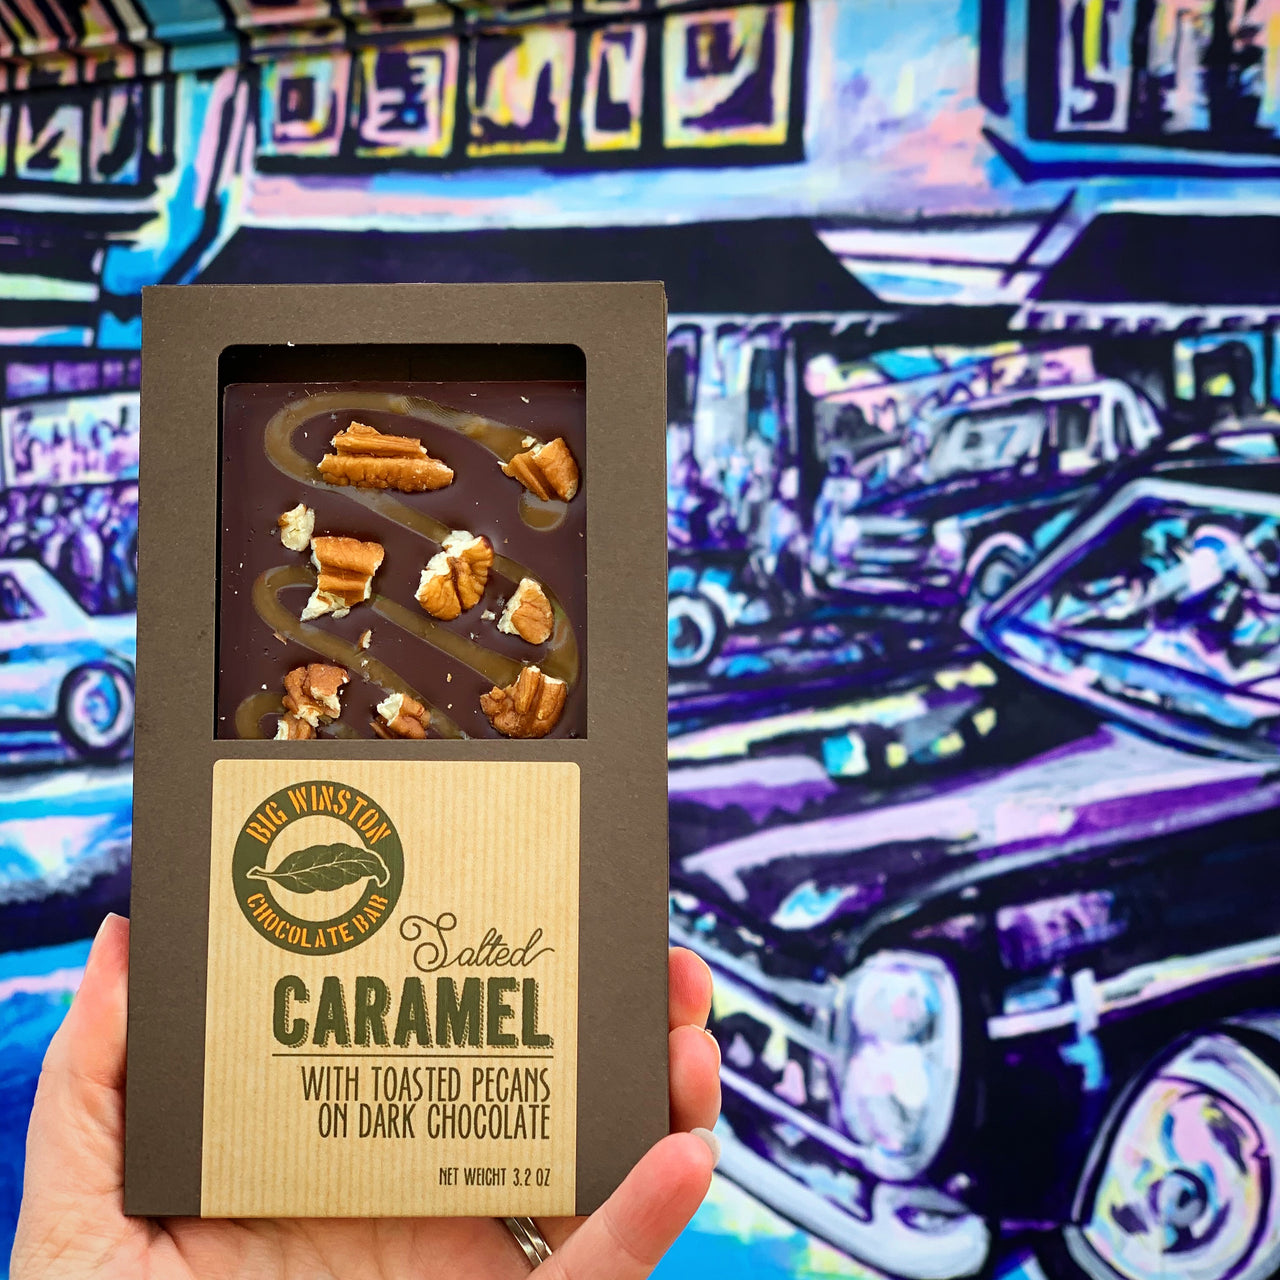 Our Salted Caramel Big Winston Combines our Dark Chocolate with a decadent drizzle of Salted Caramel and a crunch of Toasted Pecans.  Sweet, salty, and Chocolatey, its a taste of the south!